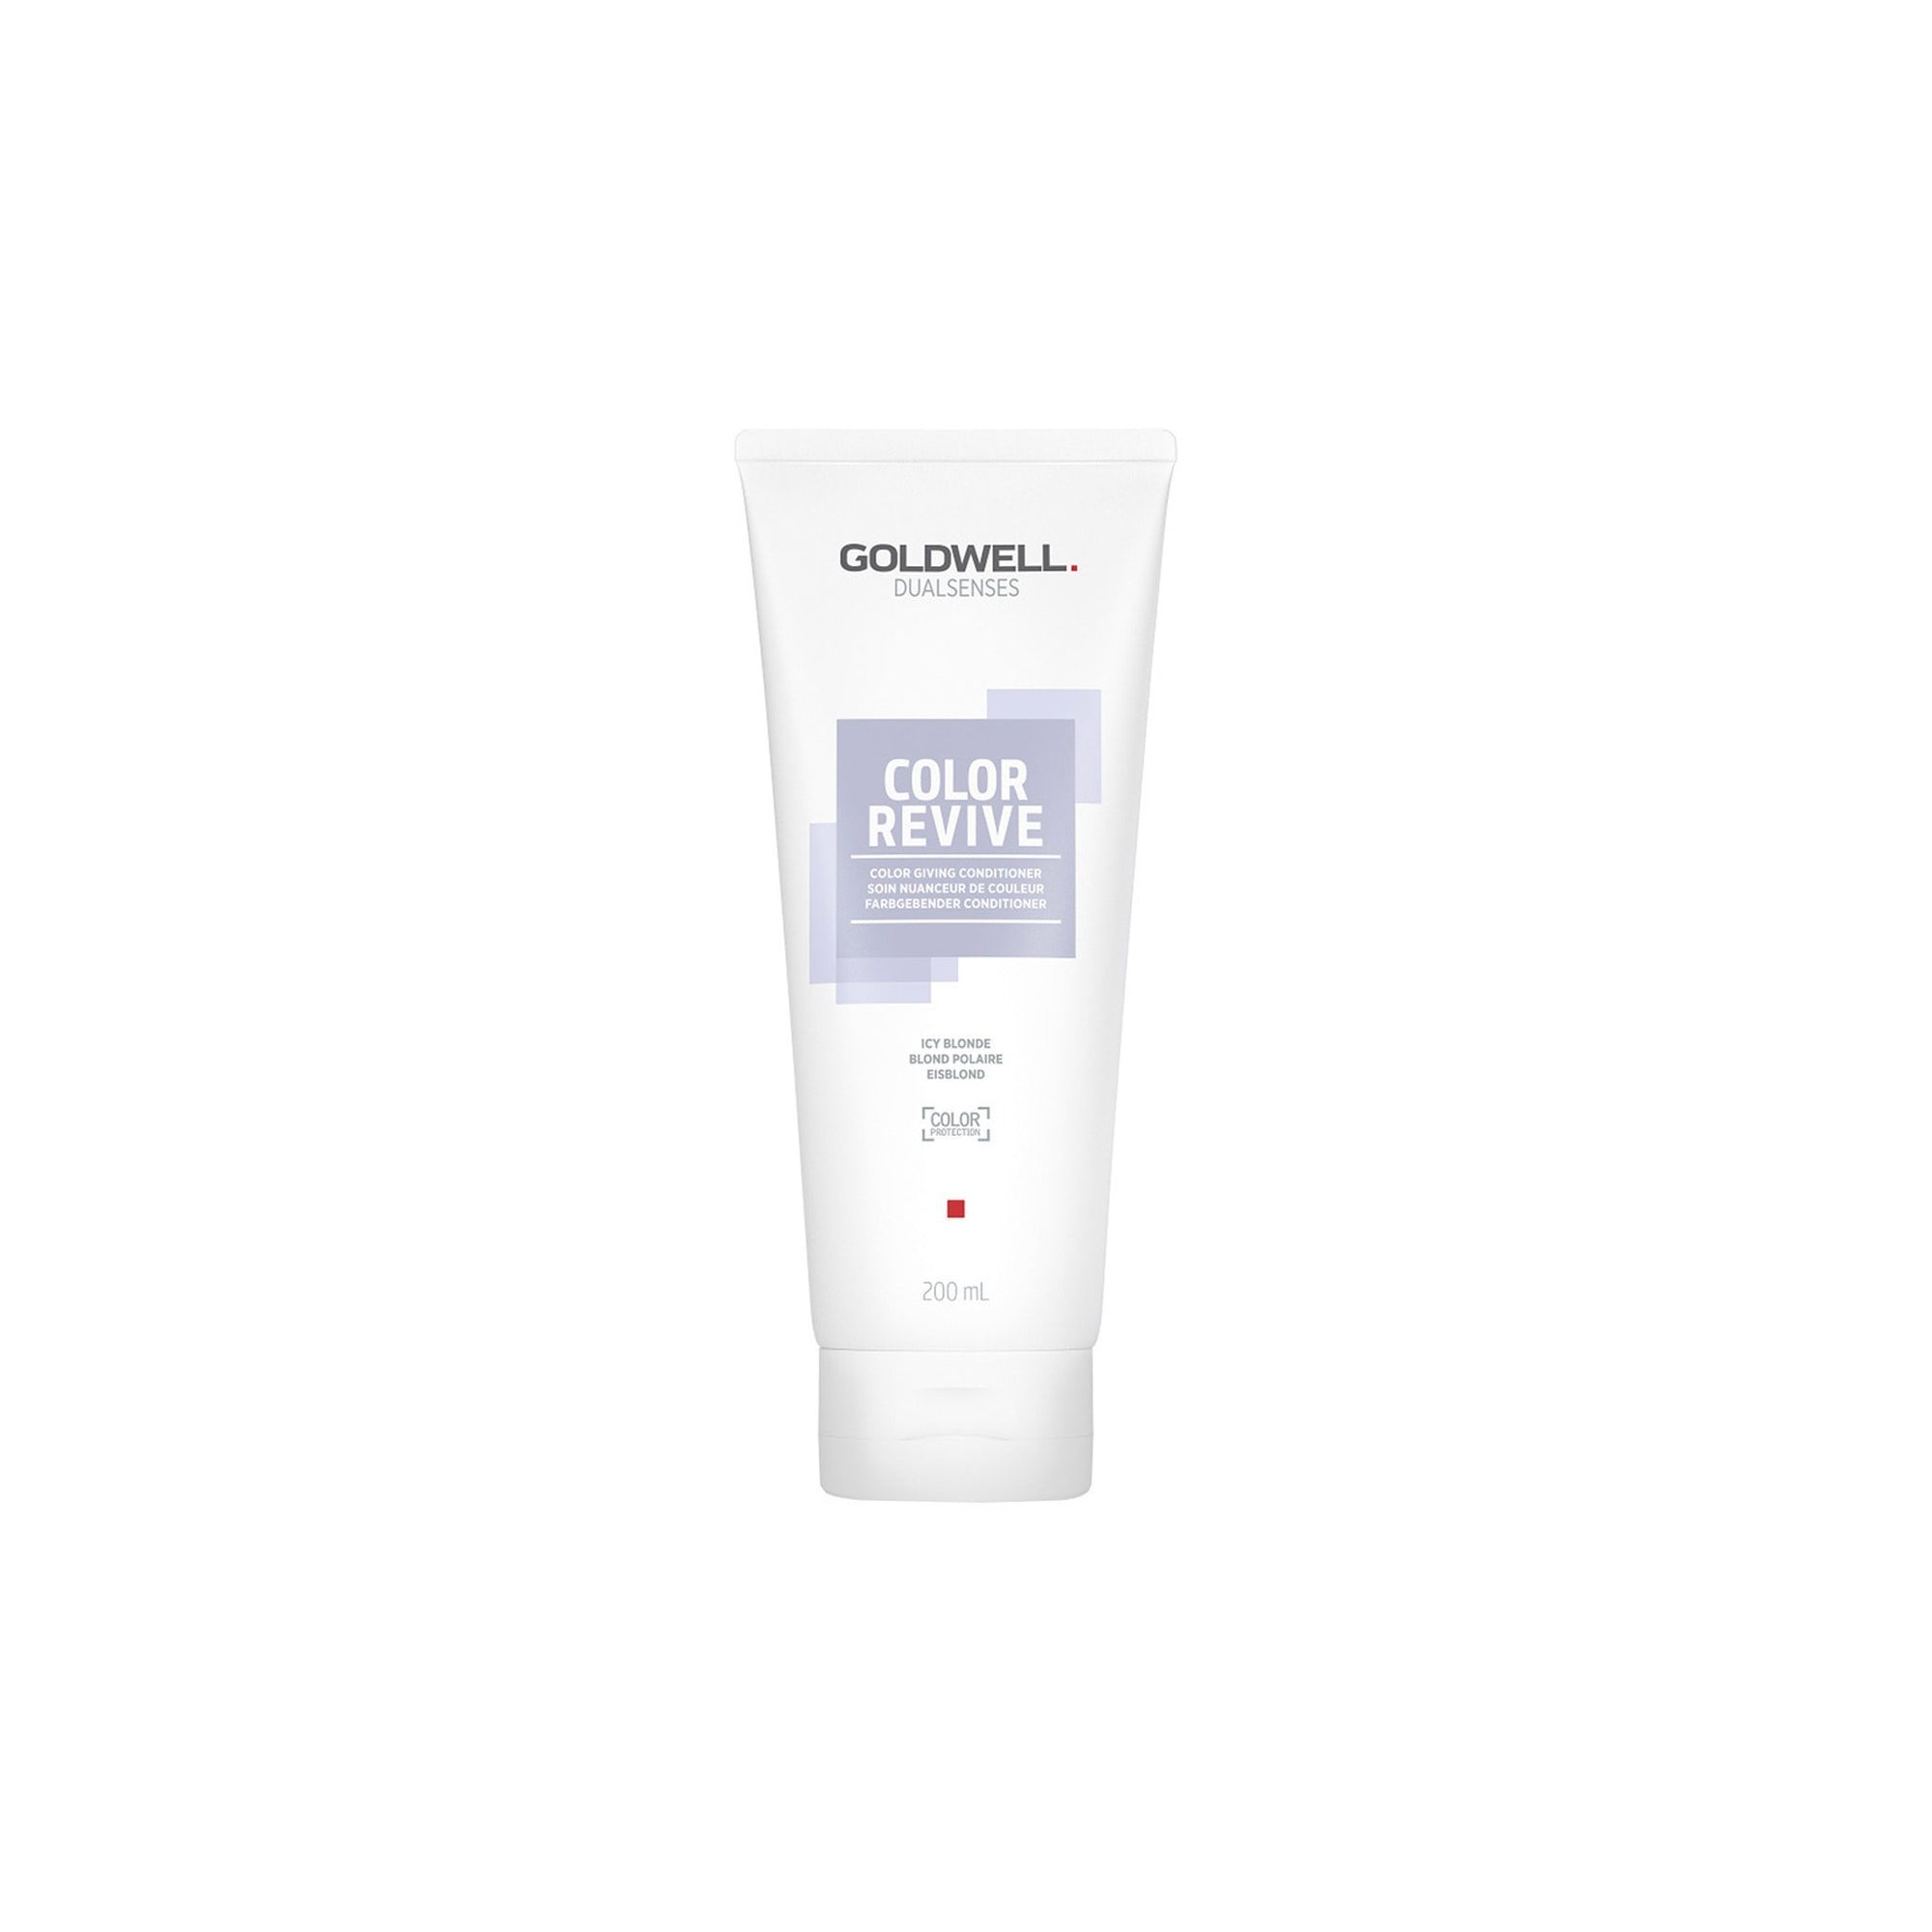 Goldwell Dualsenses Color Revive Color Giving Conditioner 200 ml - Icy Blonde